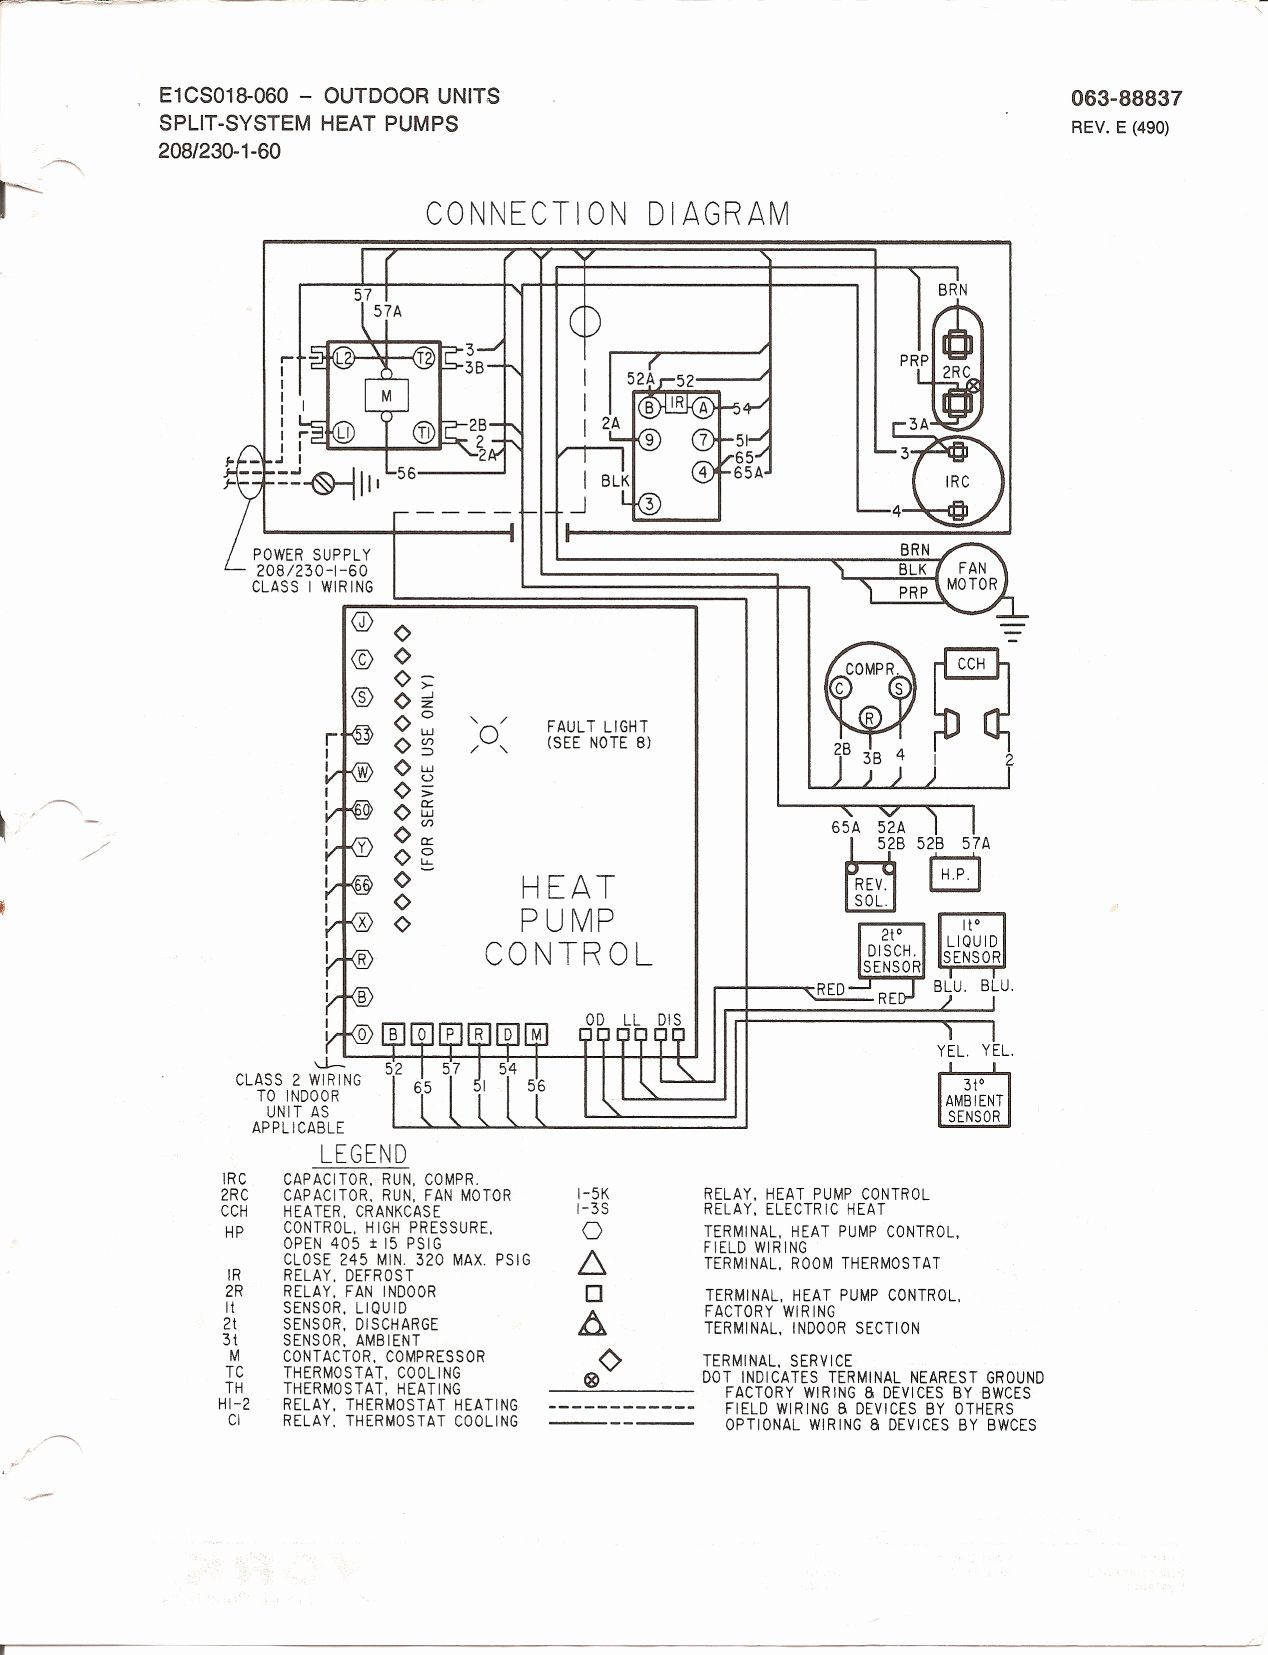 Trane Baysens019b Thermostat Wiring Diagram